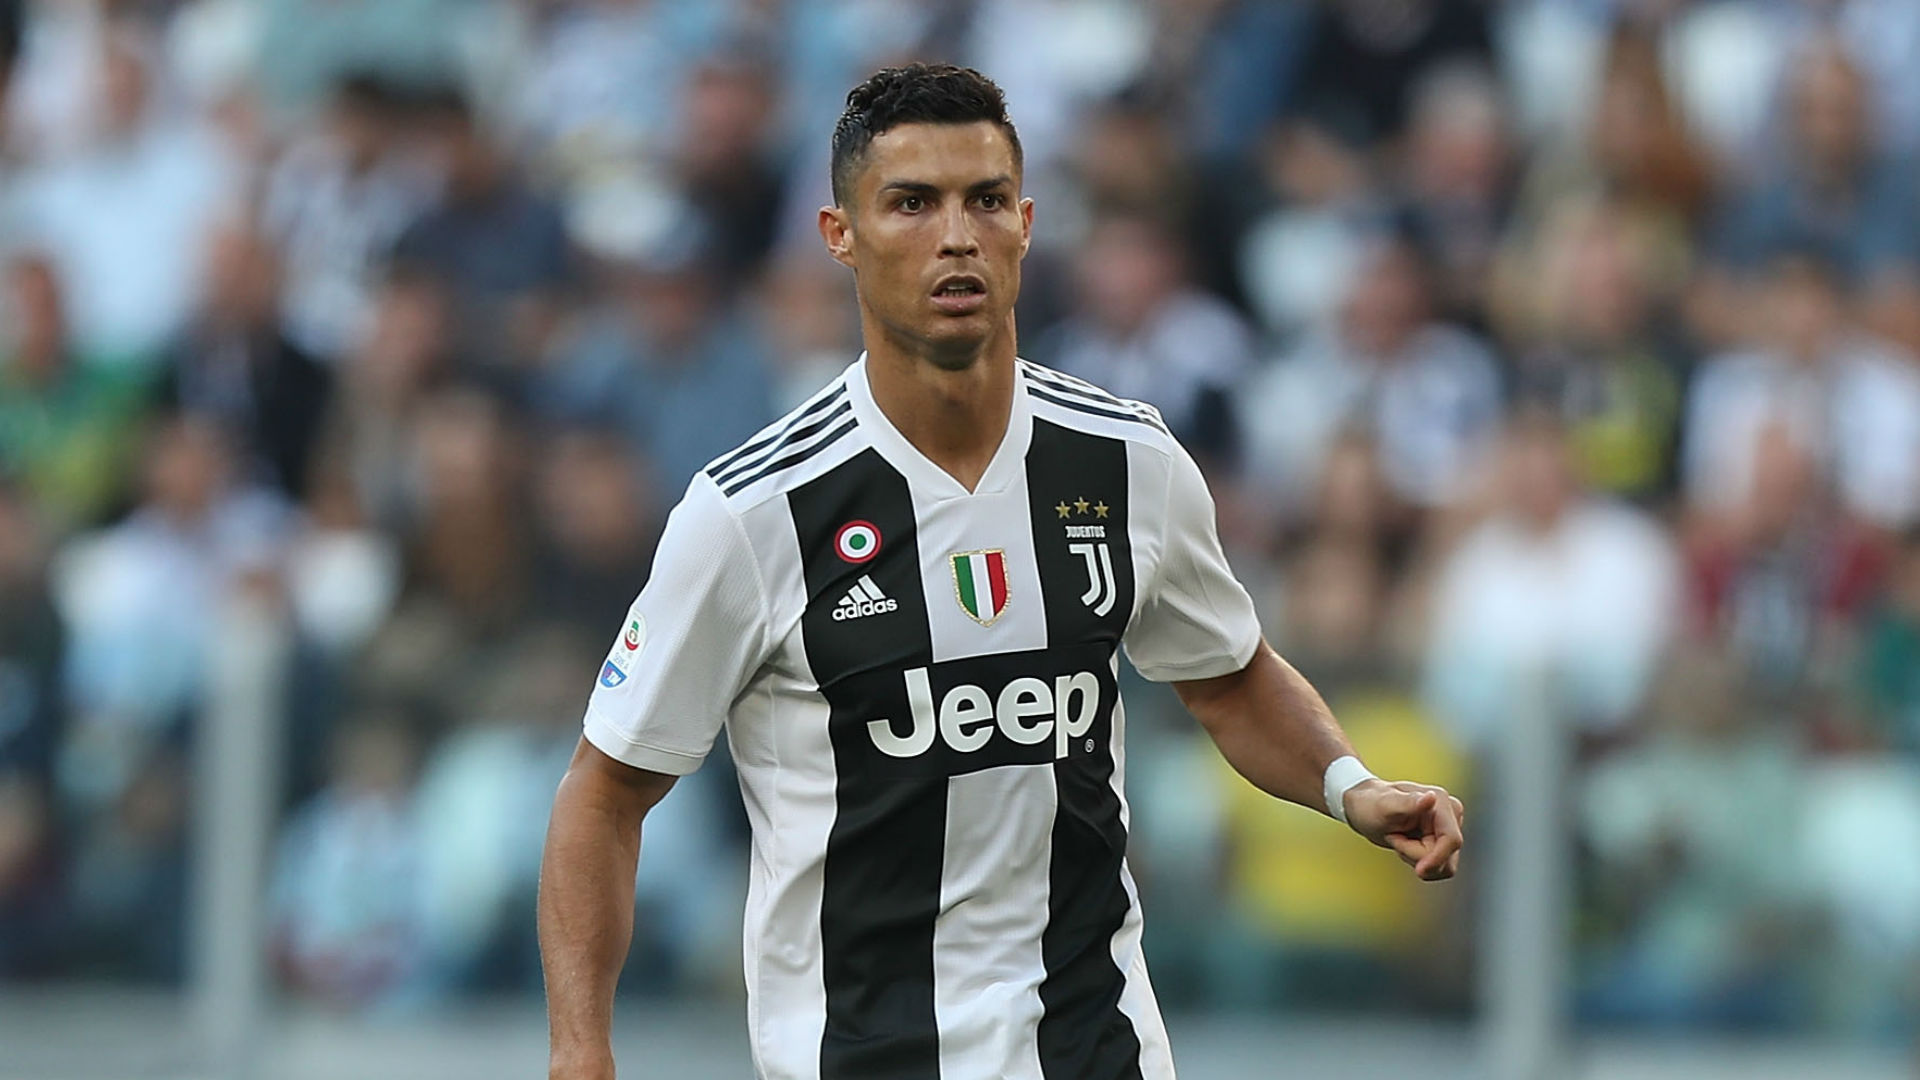 Sinclair hits out at 'poor statement' from Juventus over Ronaldo